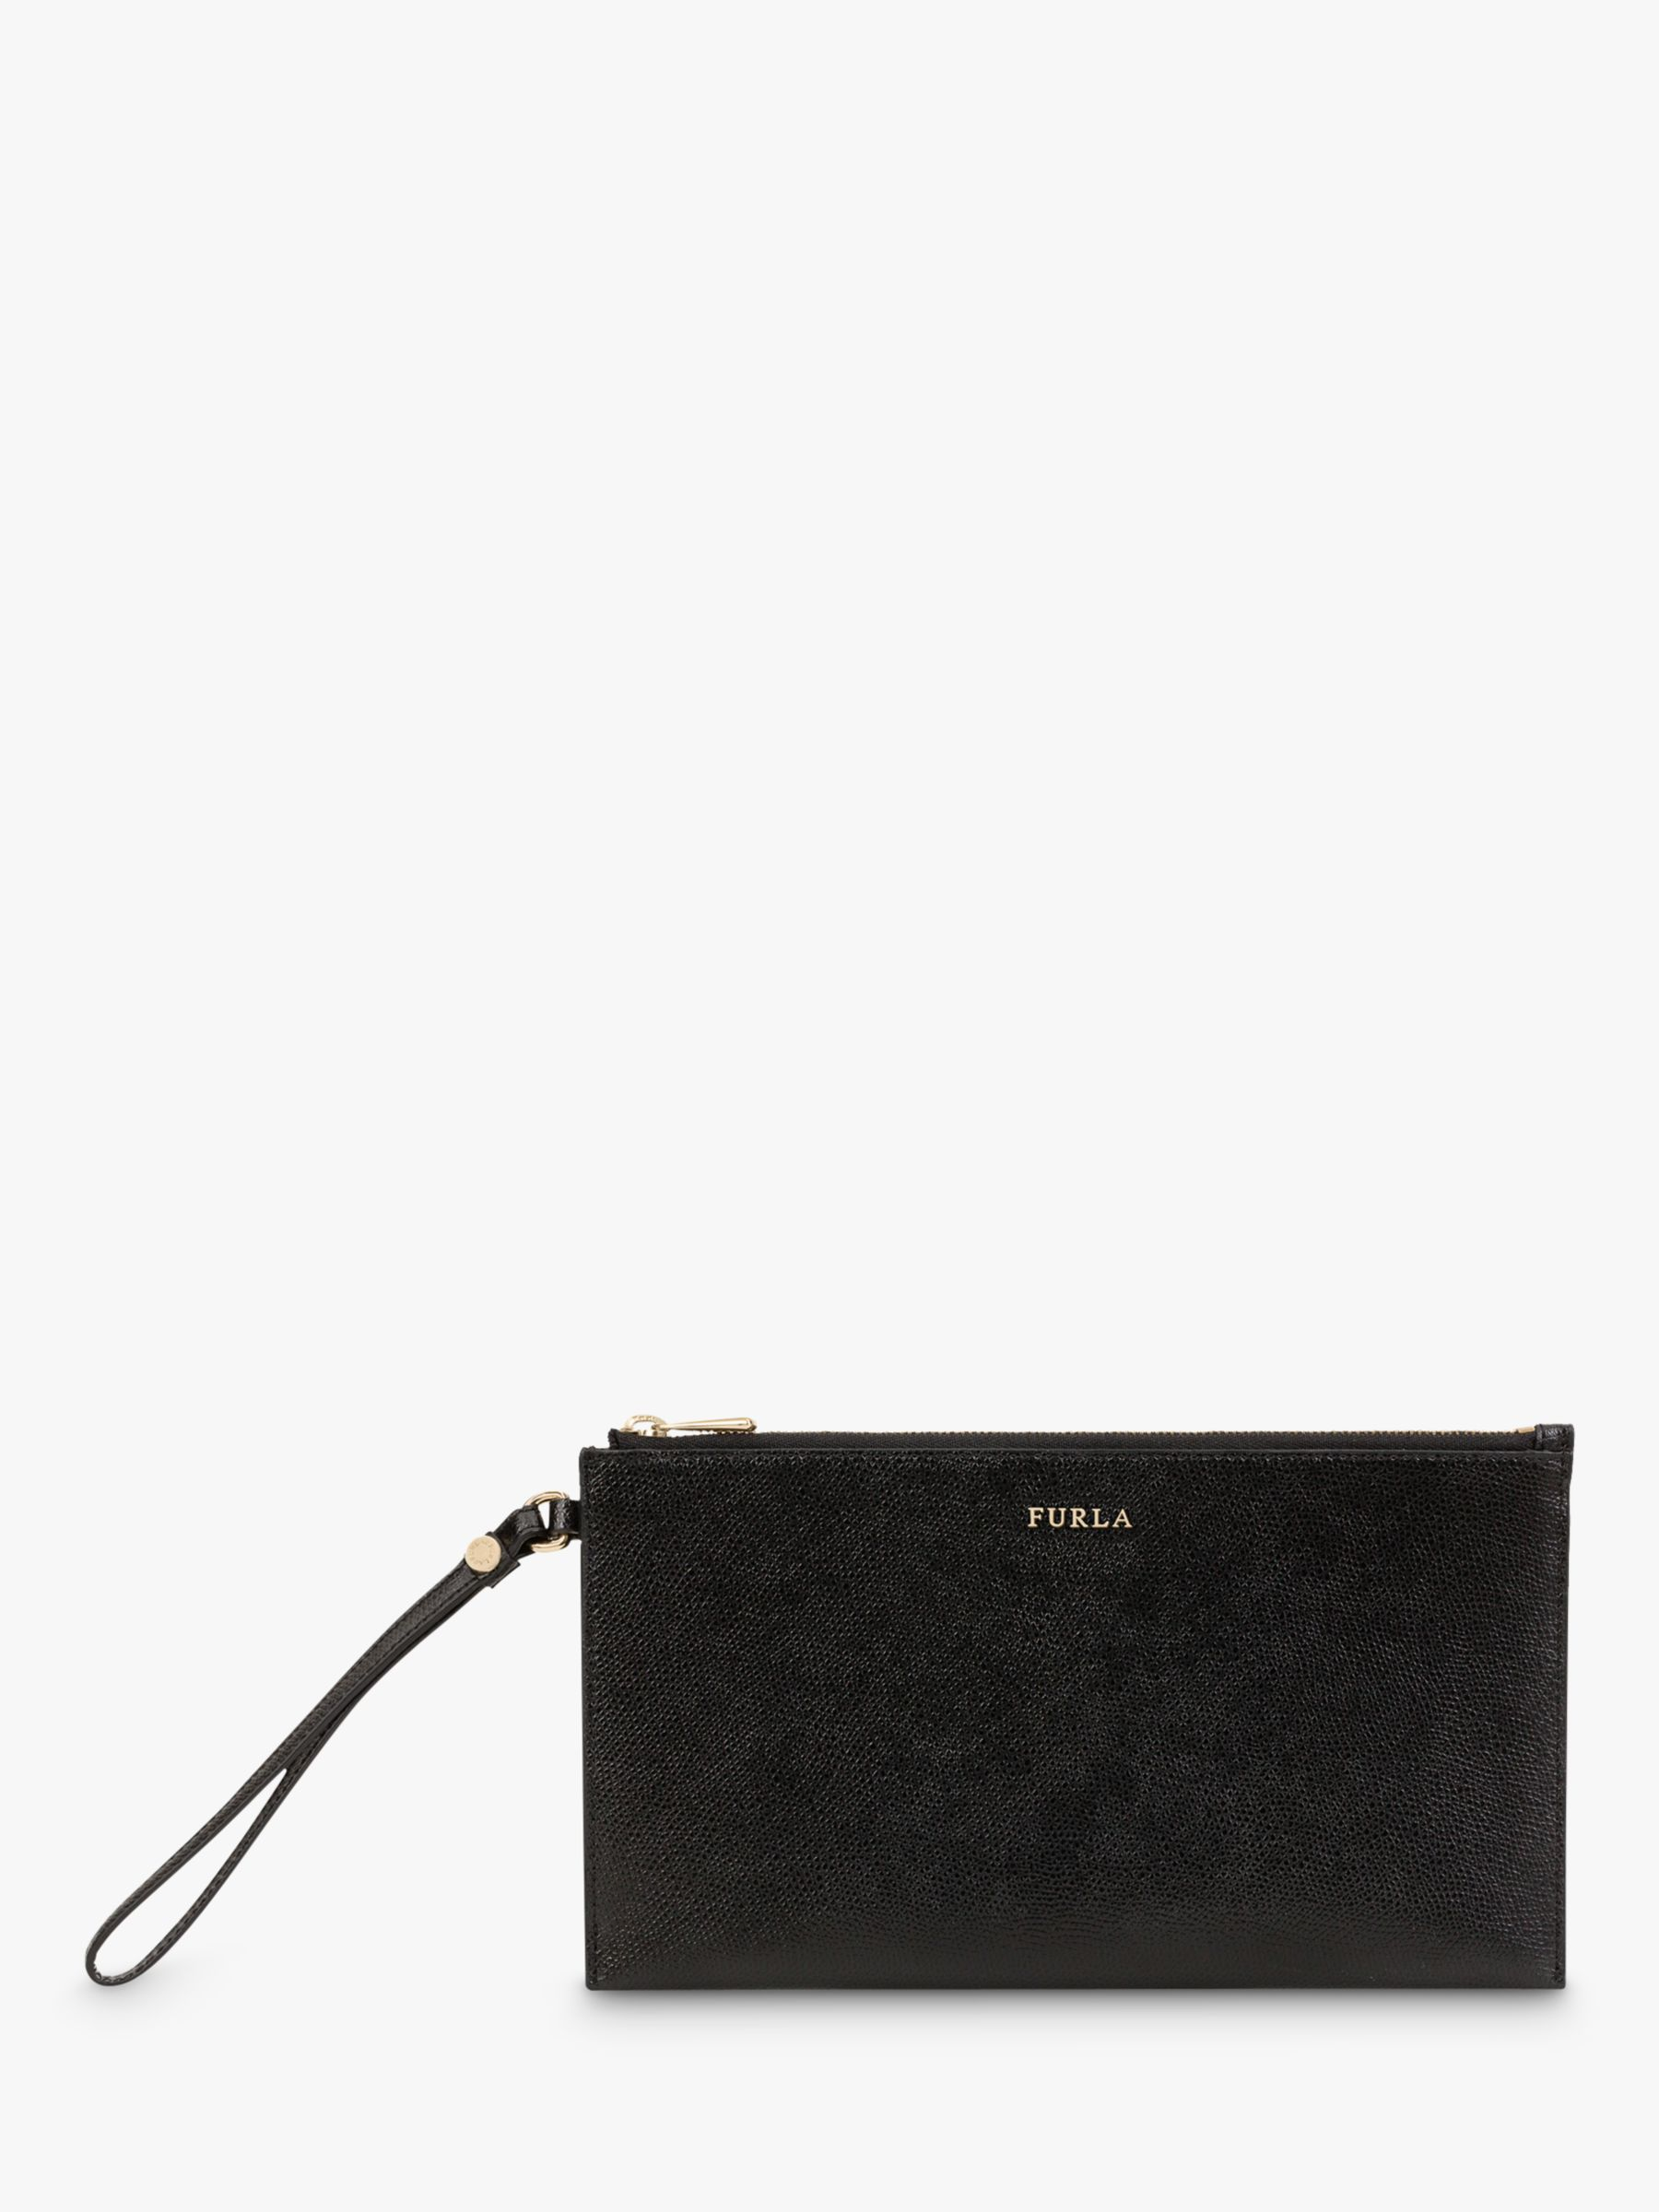 Furla Furla Babylon Leather Zip Pouch Purse